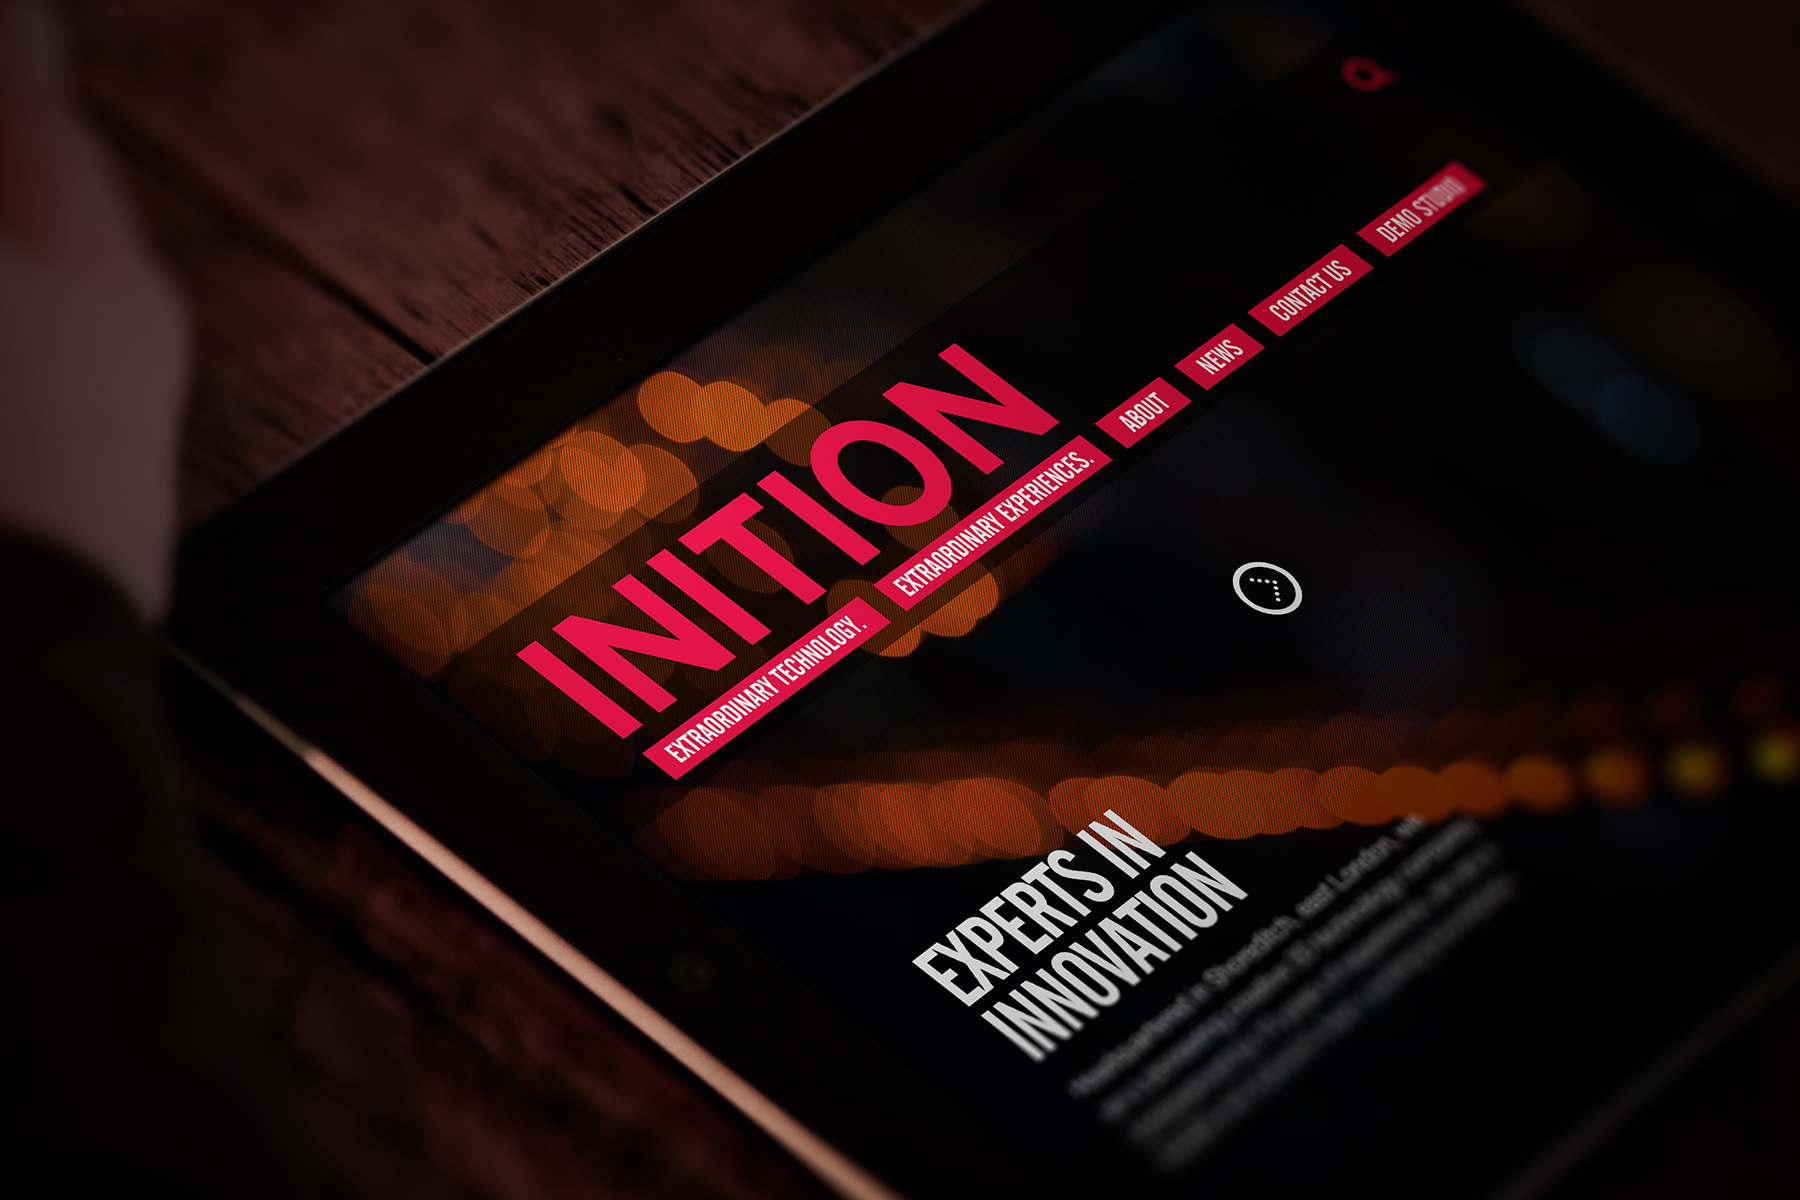 INITION   RESPONSIVE WEBSITE DESIGN AND BUILDRESPONSIVE WEBSITE DESIGN AND BUILDINITIONWebsite redesign for a pioneering interactive production company and emerging technology provider.